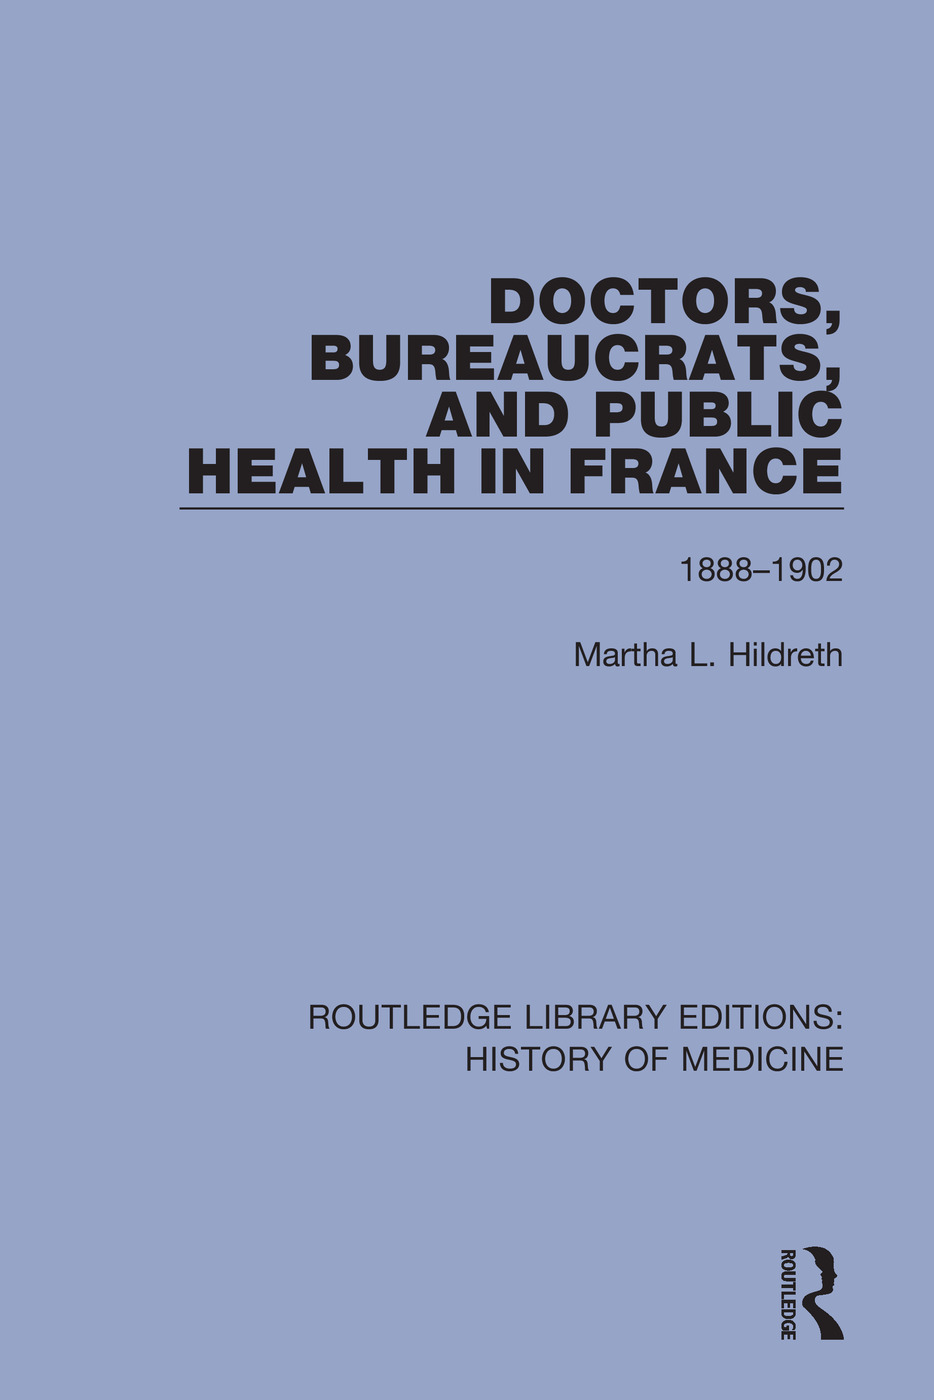 Doctors, Bureaucrats, and Public Health in France: 1888-1902 book cover